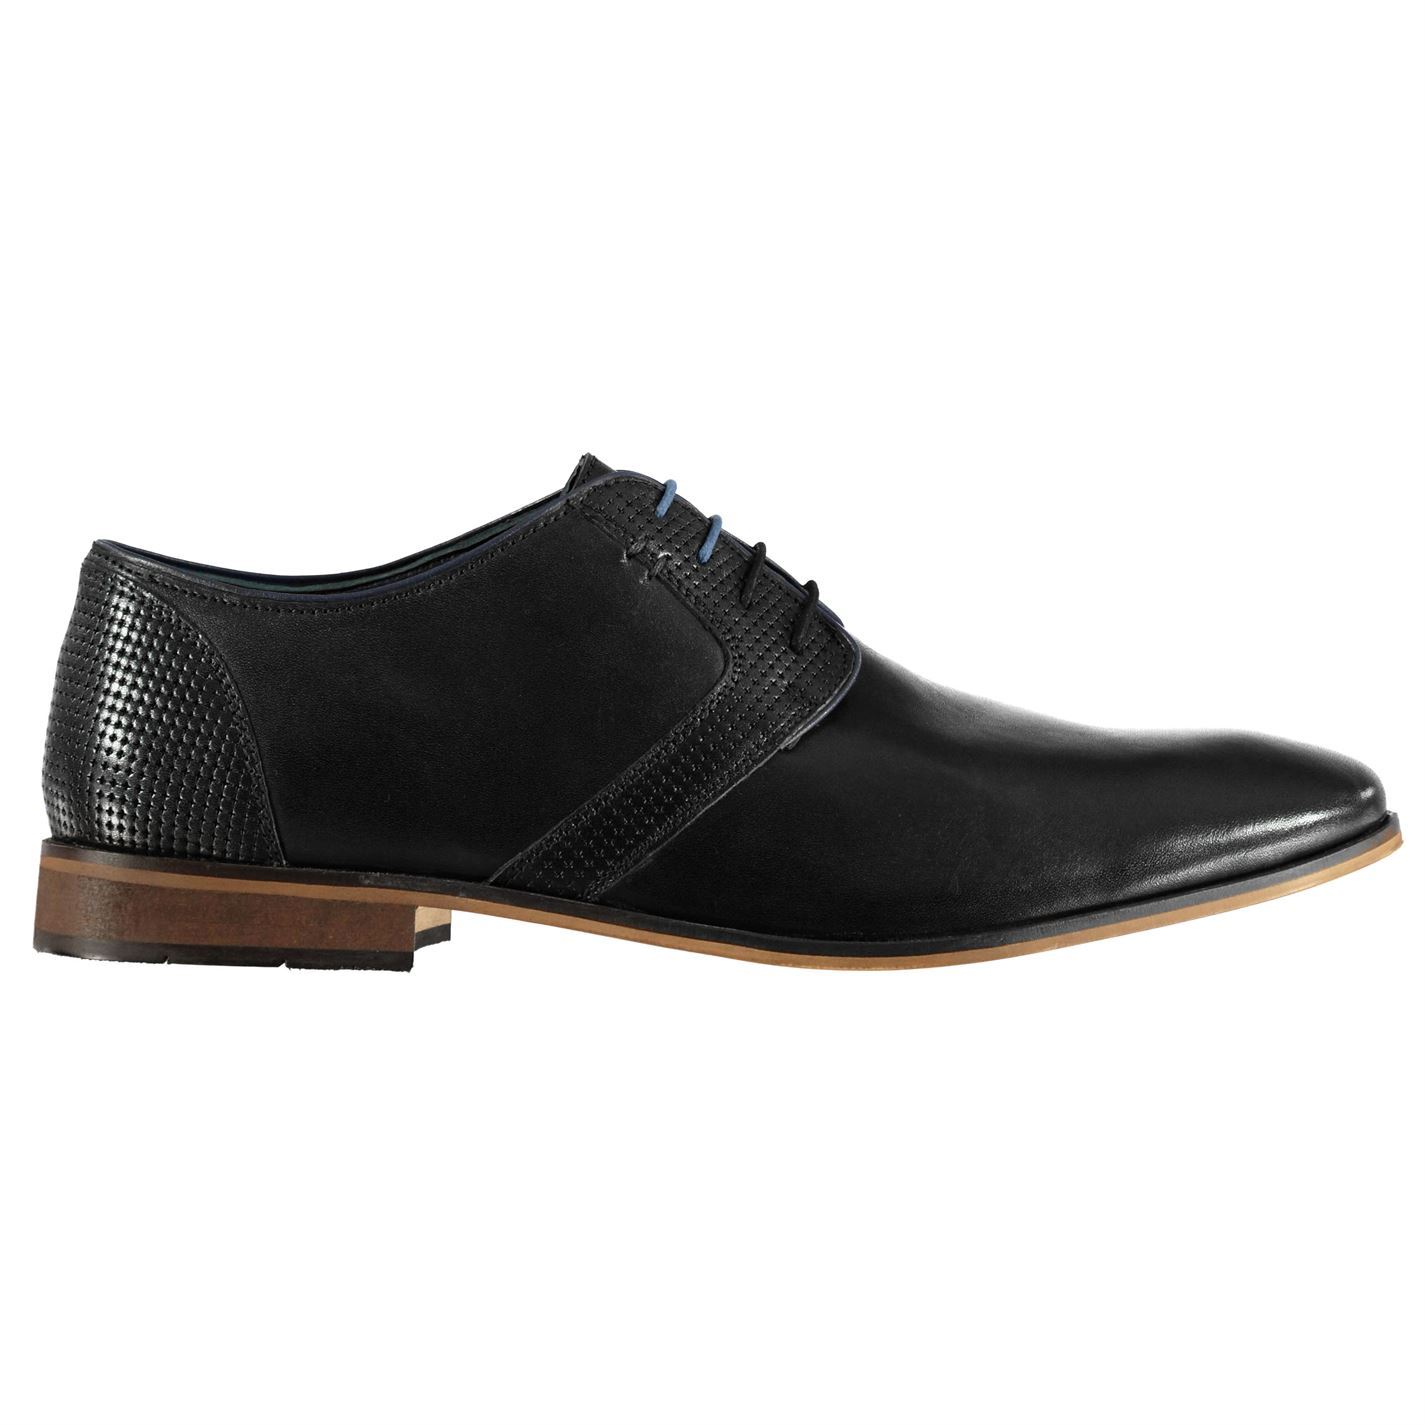 Pod Schuhes Elegant Occasion Laces Fastened Schuhes Pod  Uomo Gents Everyday Formal 308dc1